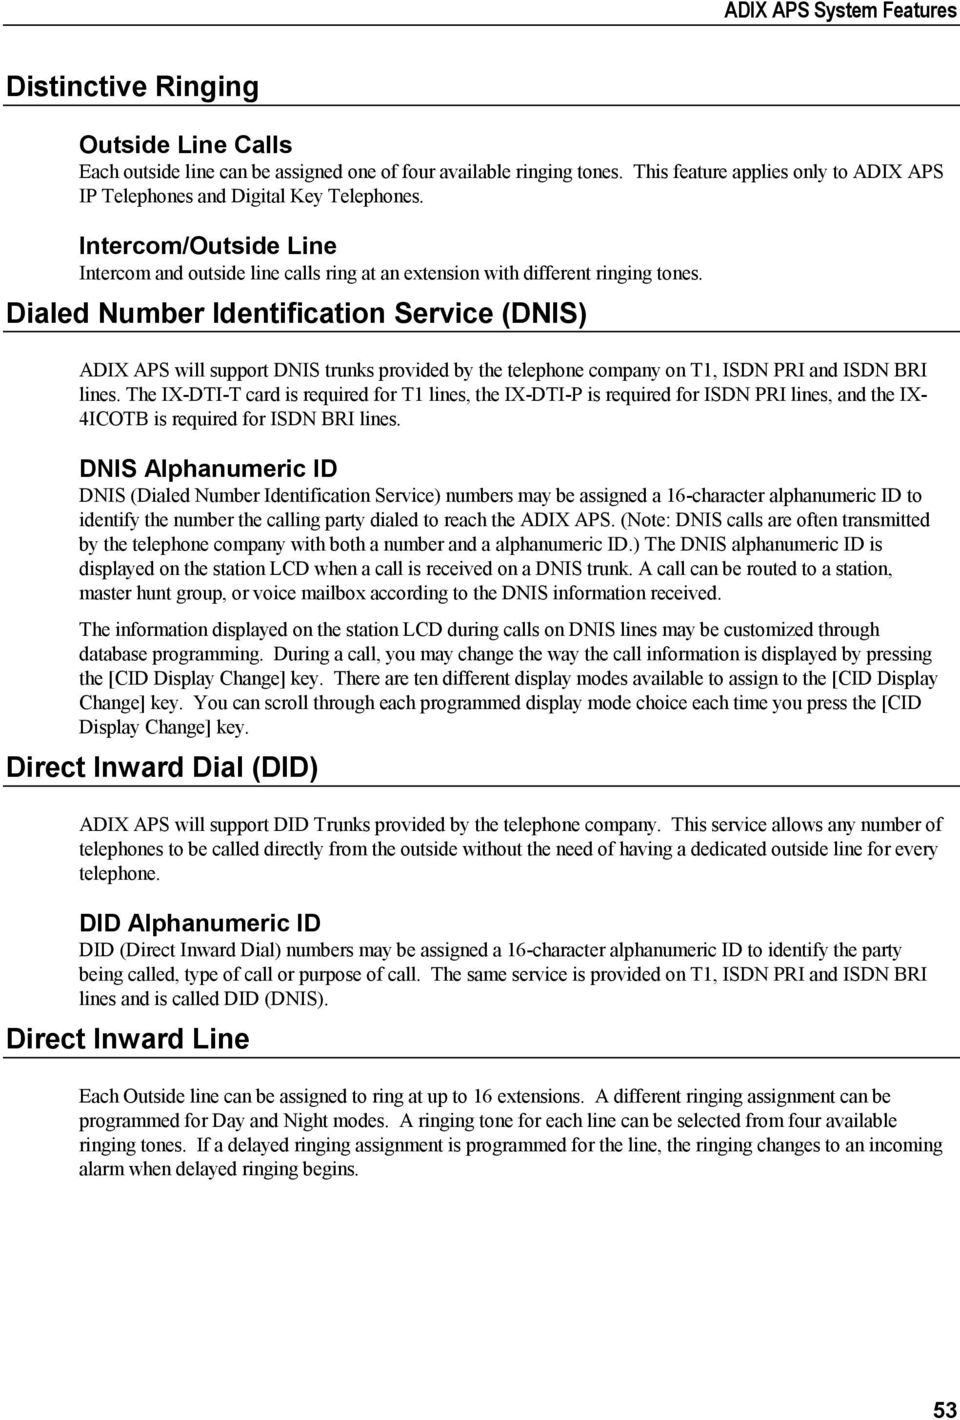 Dialed Number Identification Service (DNIS) ADIX APS will support DNIS trunks provided by the telephone company on T1, ISDN PRI and ISDN BRI lines.